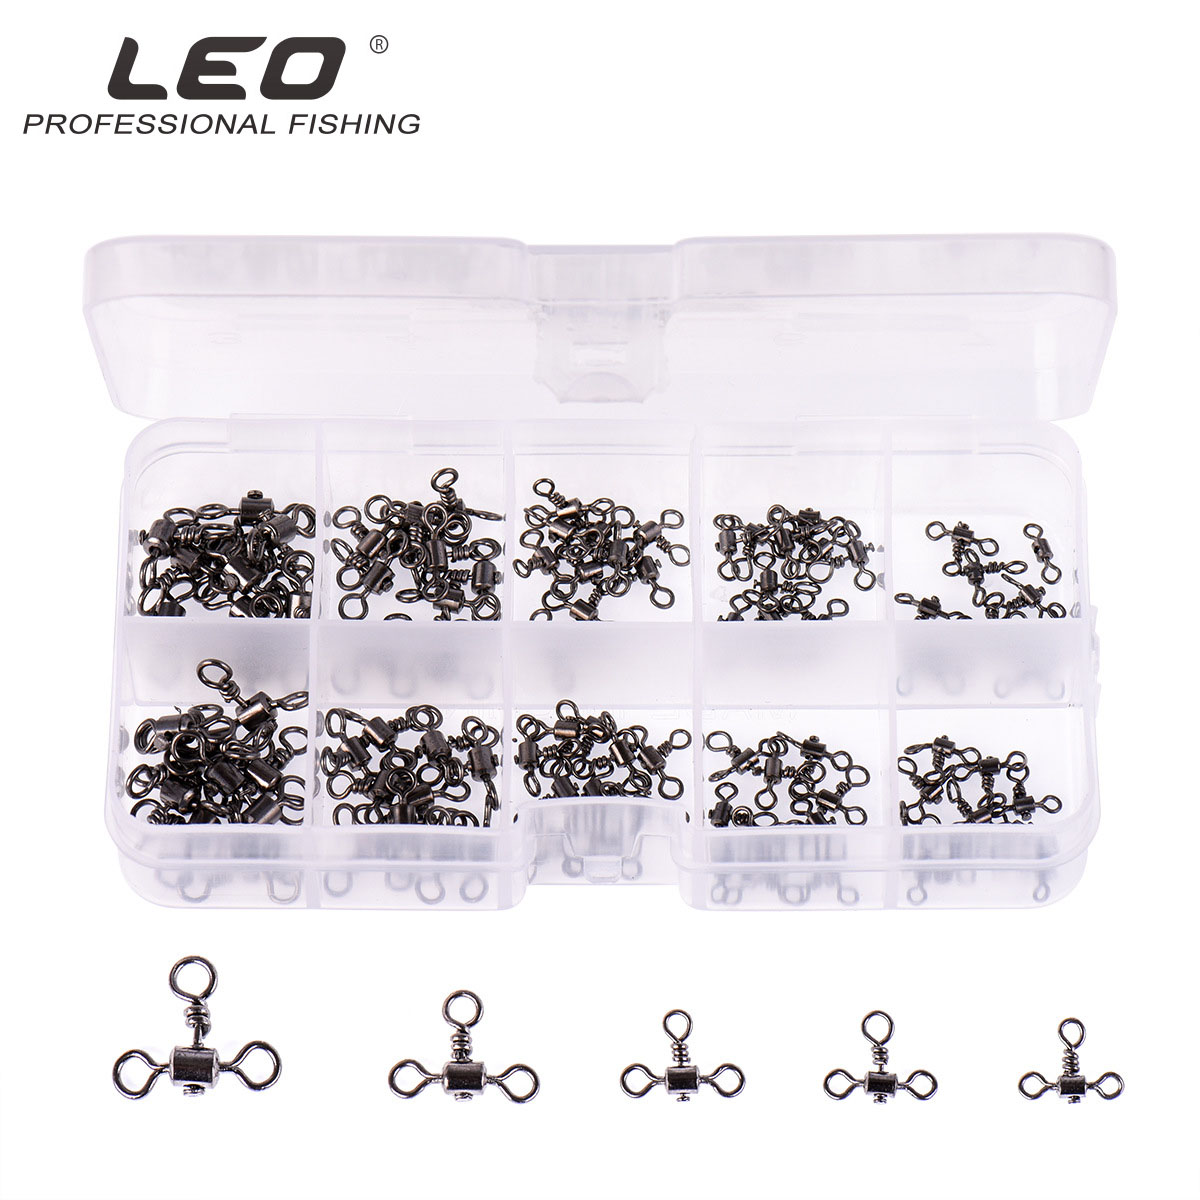 100pcs Leo Fishing Connector 27820 Three Fork Balance Connector Fishing Accessories Pesca American Ring Lure Iron Nickel Plating